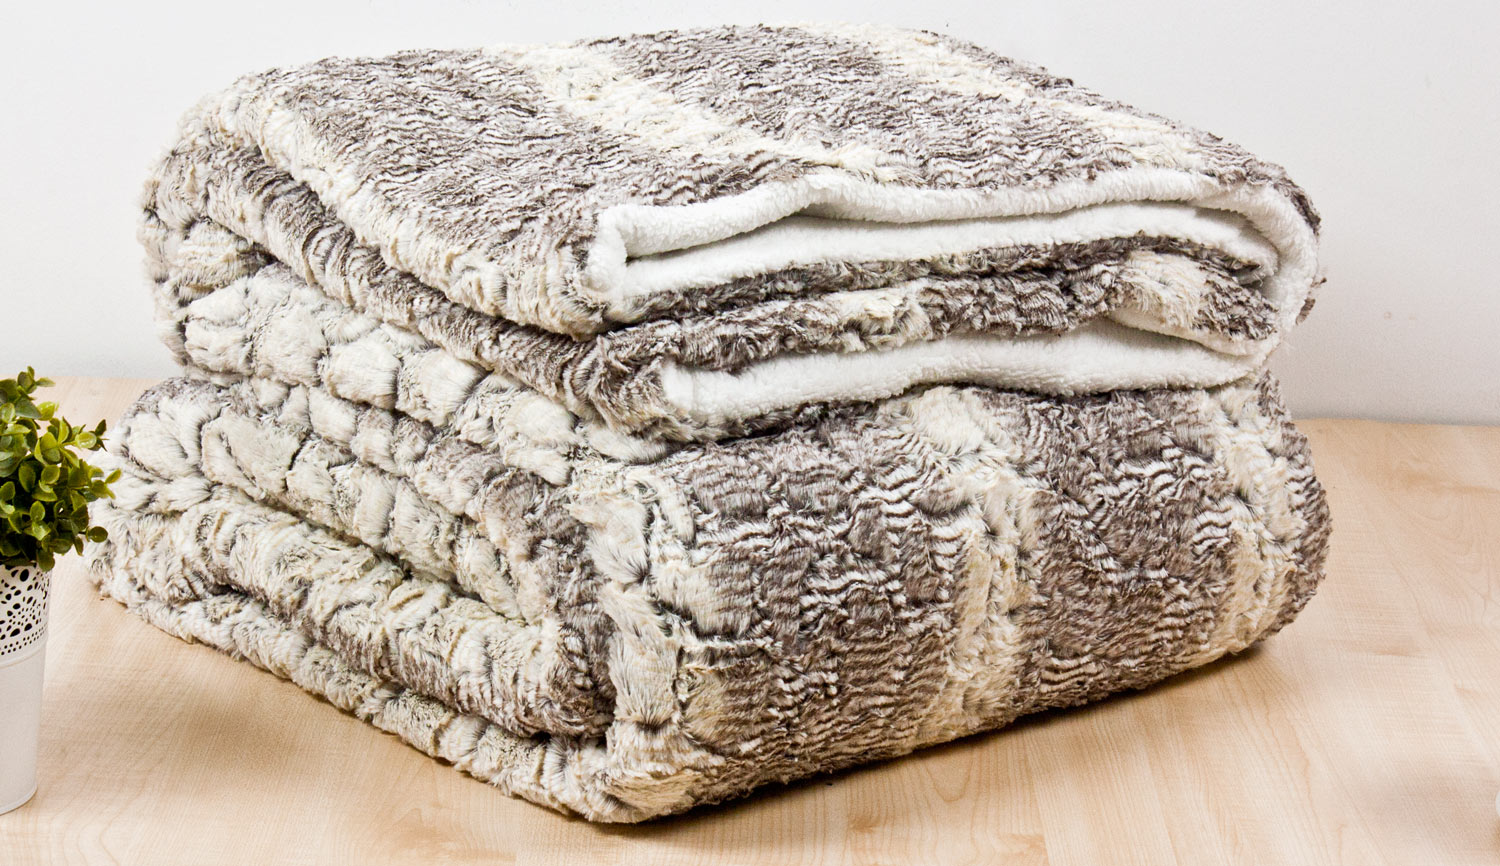 Quilt / Blanket 3 Sherpa 220X240cm - Engraving 14